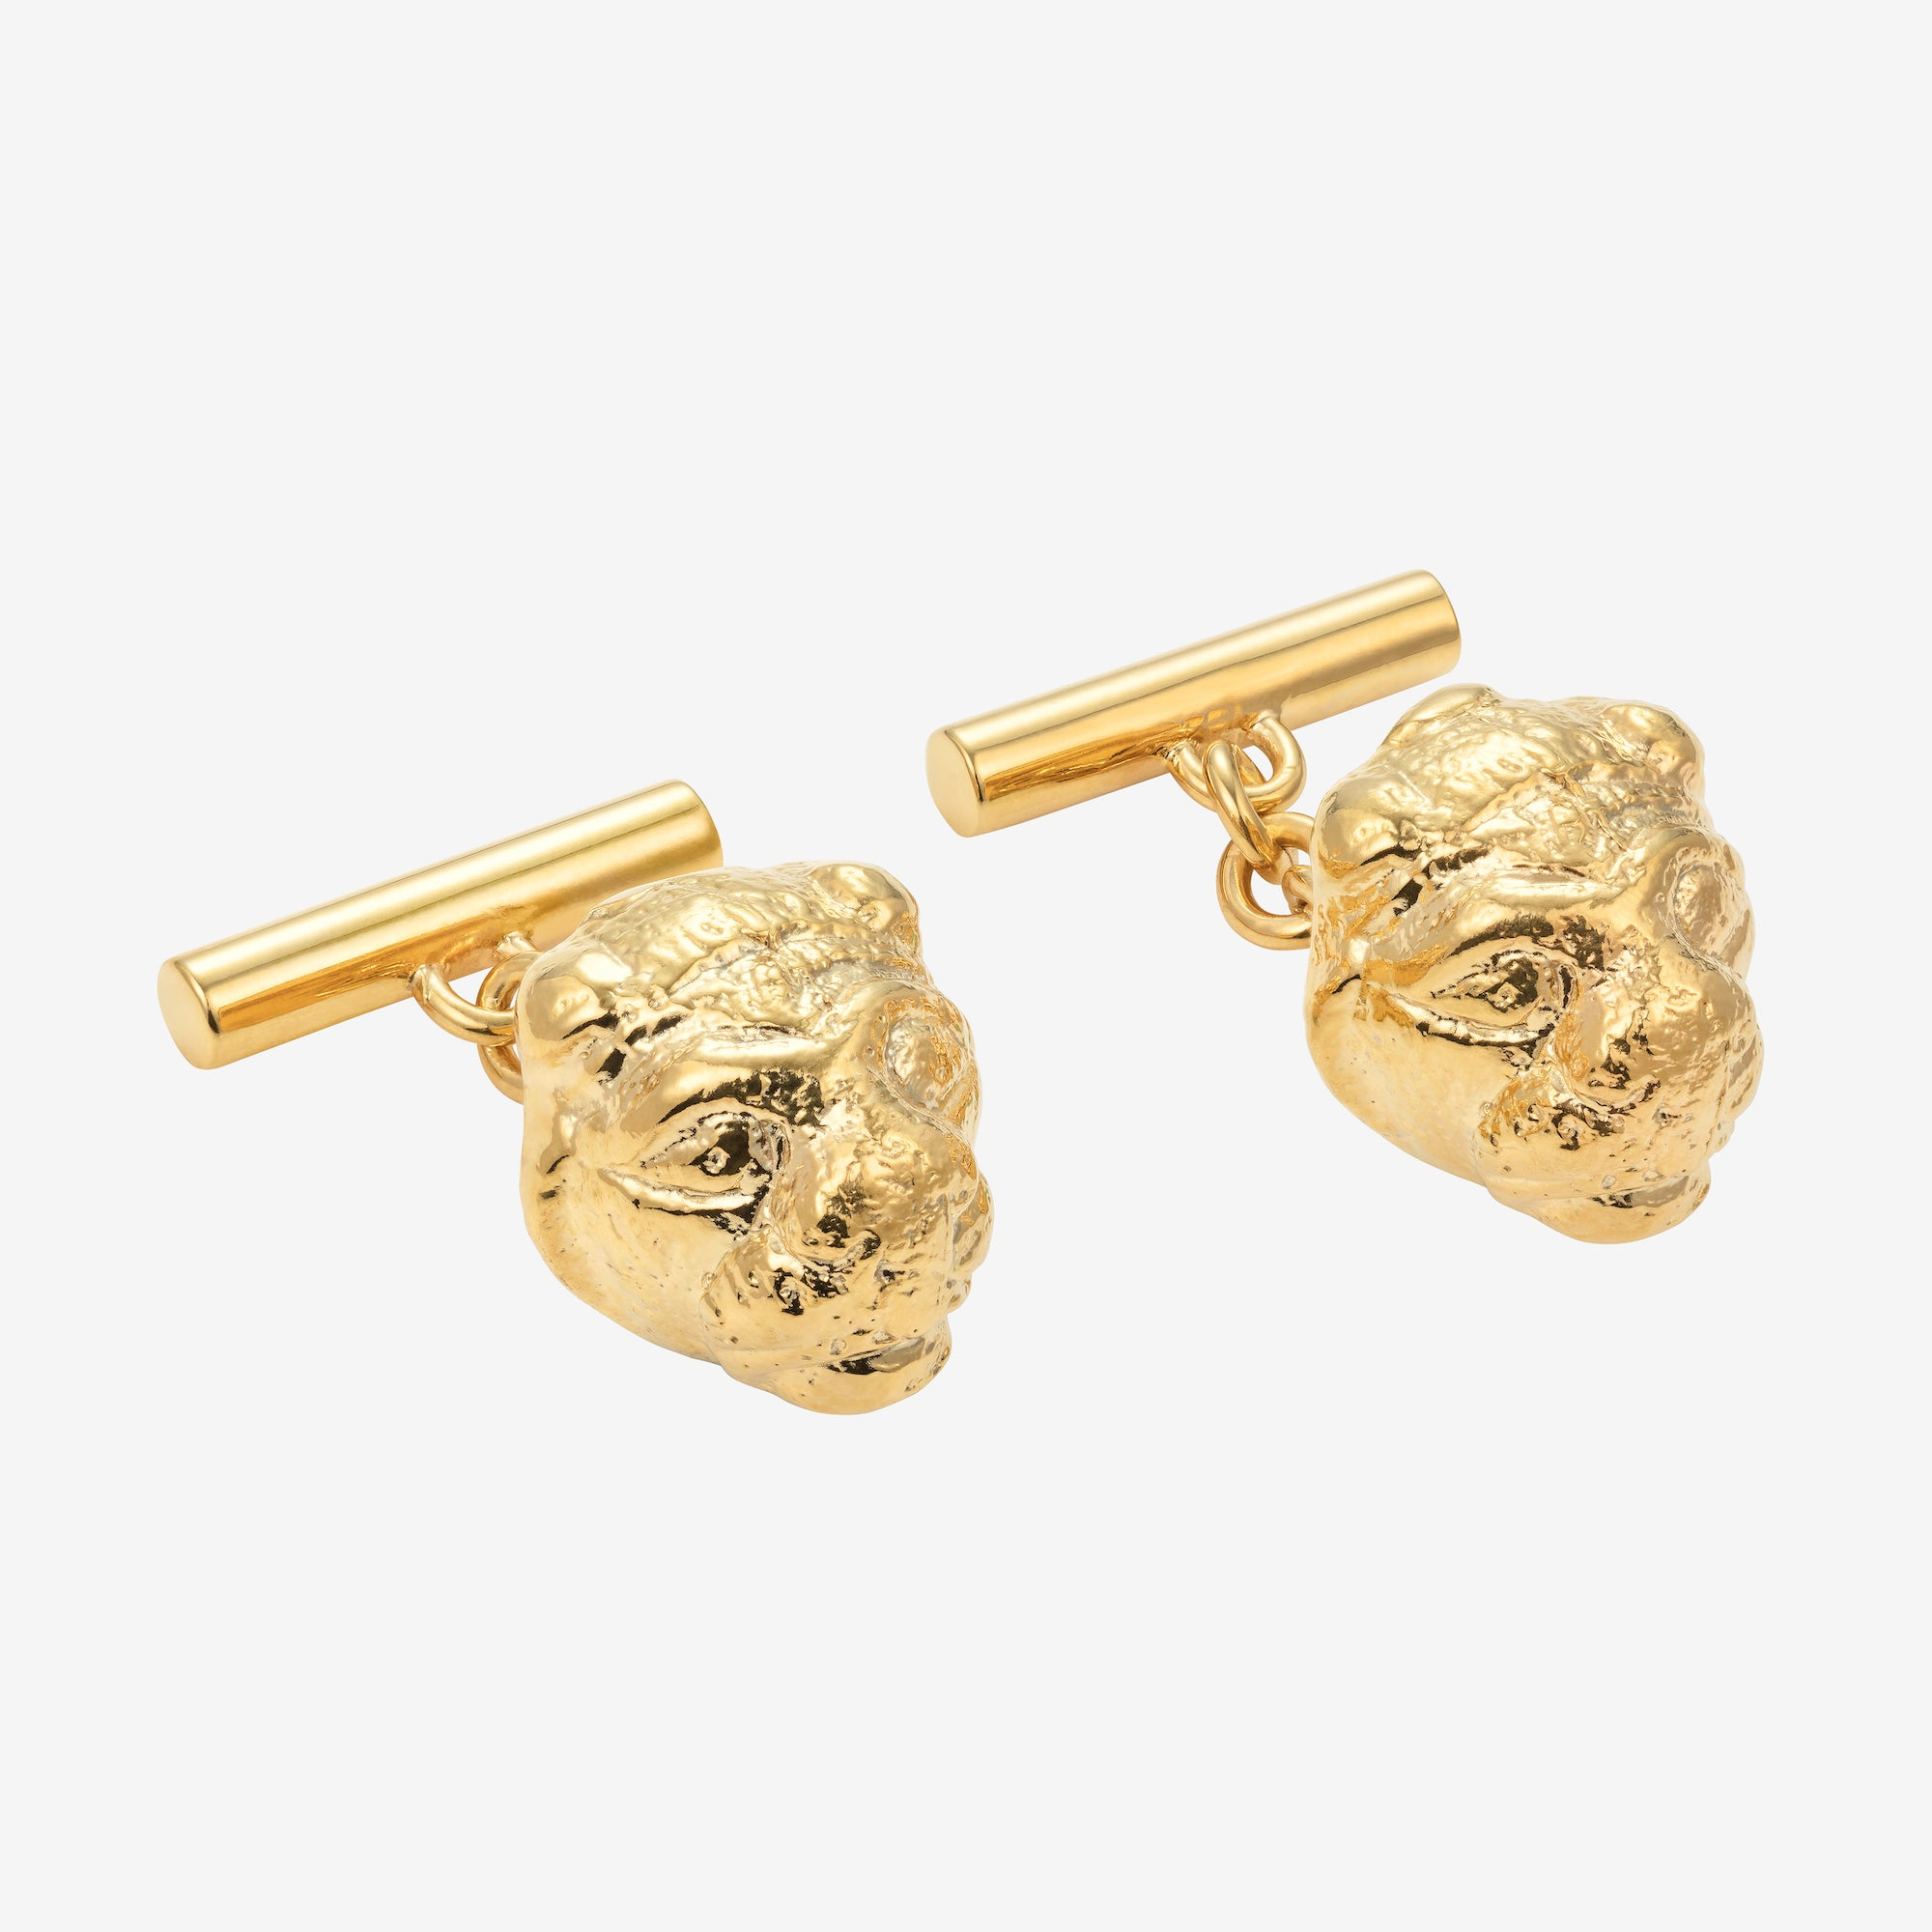 Lion's Head Cufflinks